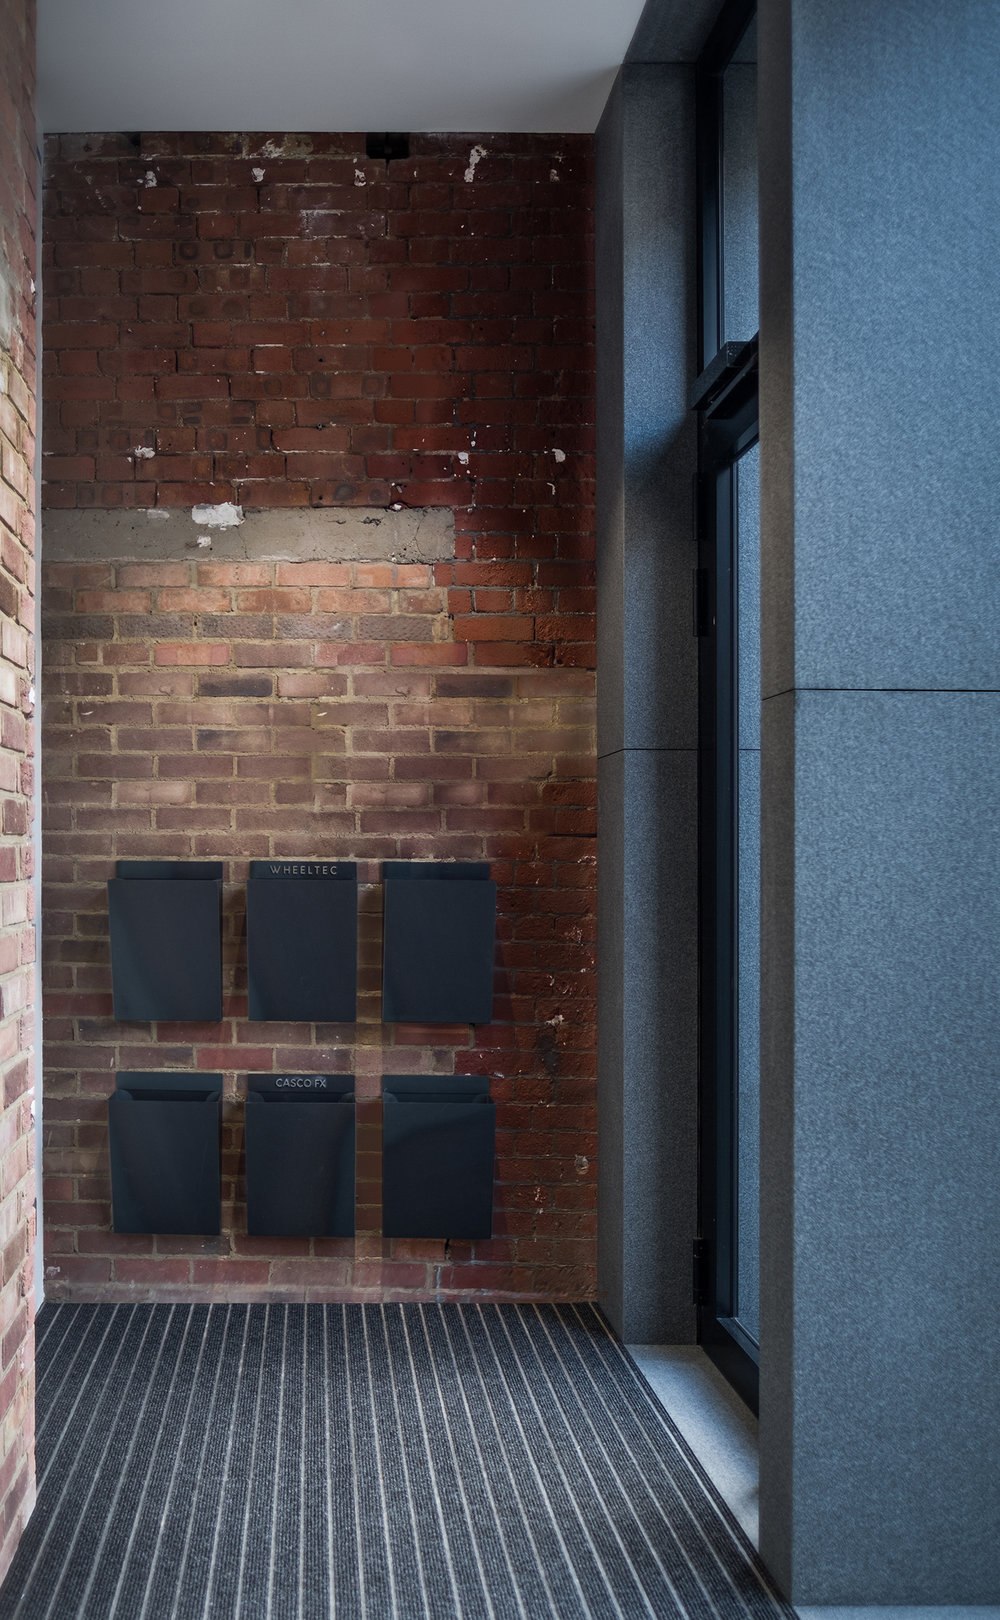 Goswell-Road-Clerkenwell-London-Office-Lobby-Entrance-Exposed-Brick-Metal-Post-Boxes-Design.jpg